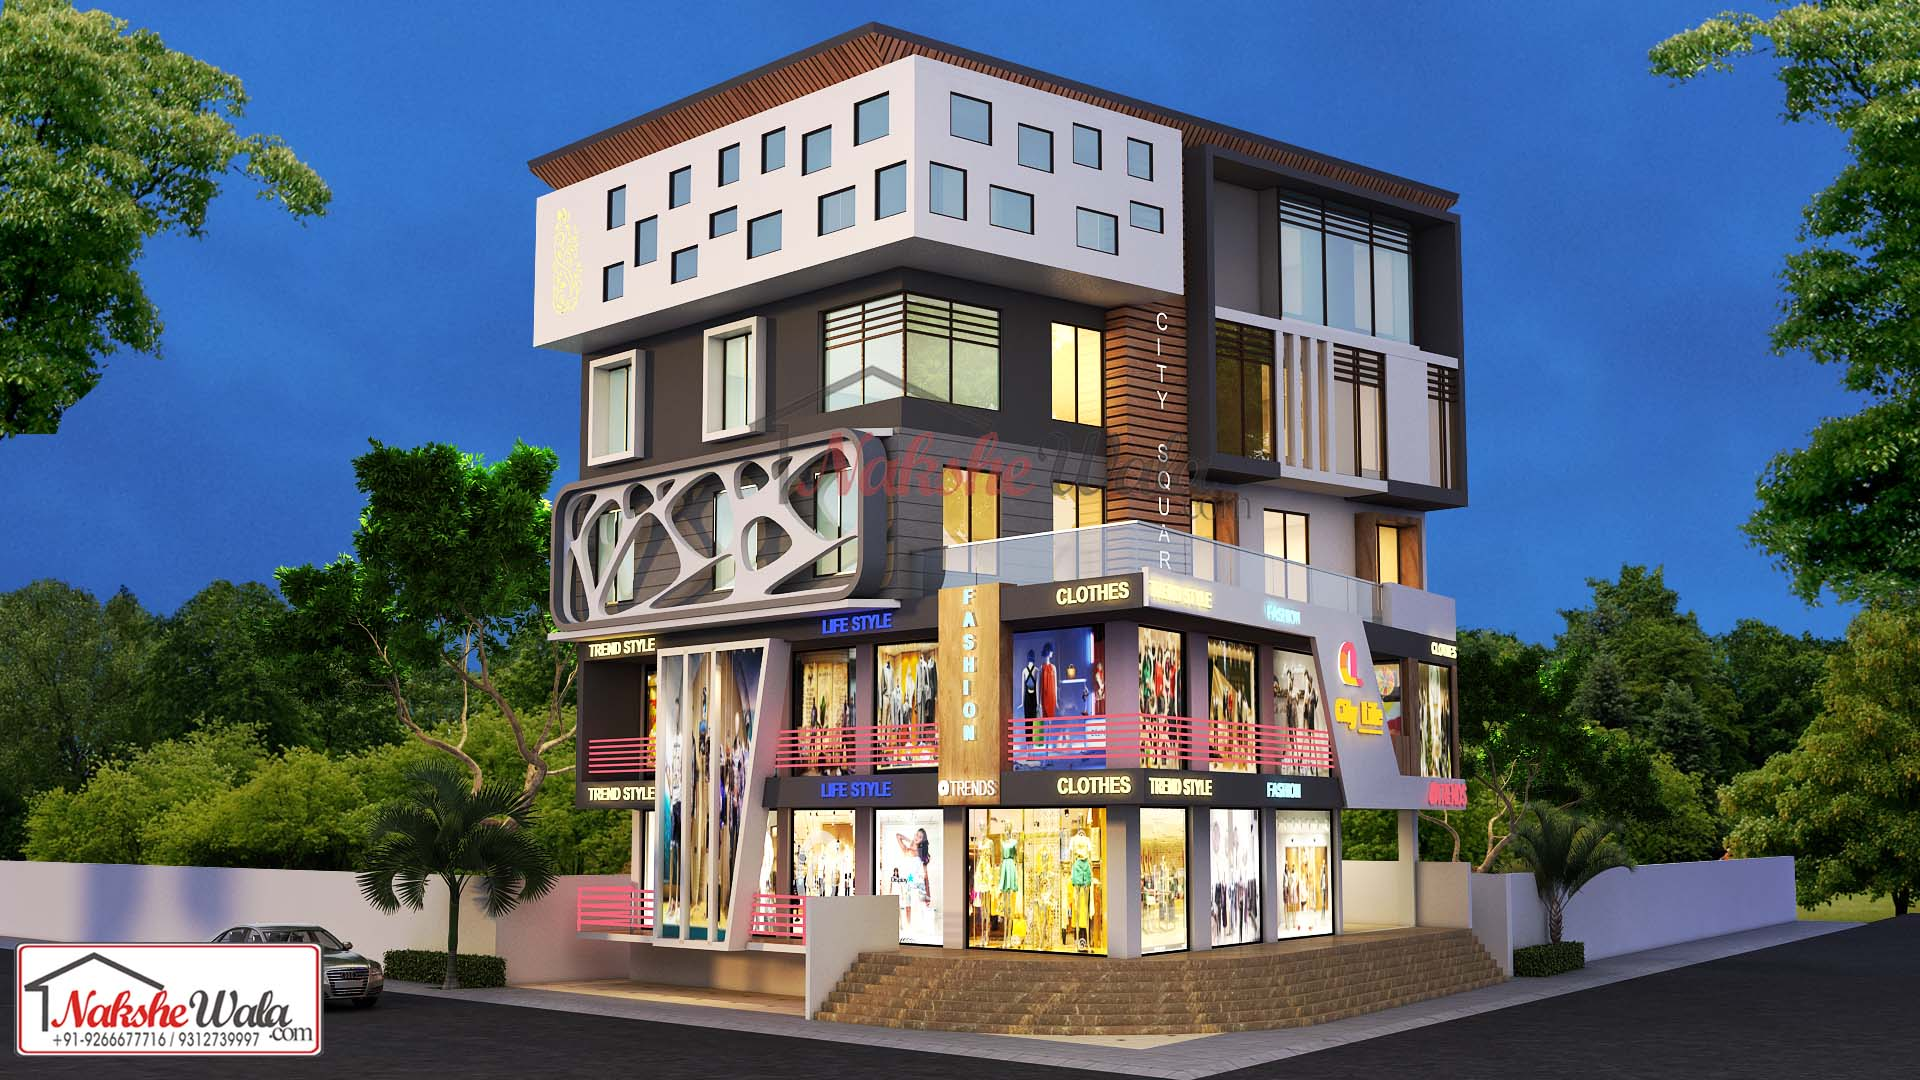 gallrey5ebbcc0d06be850x60_Shopping_Mall_Building_By_Nakshewala.com_Small.jpg